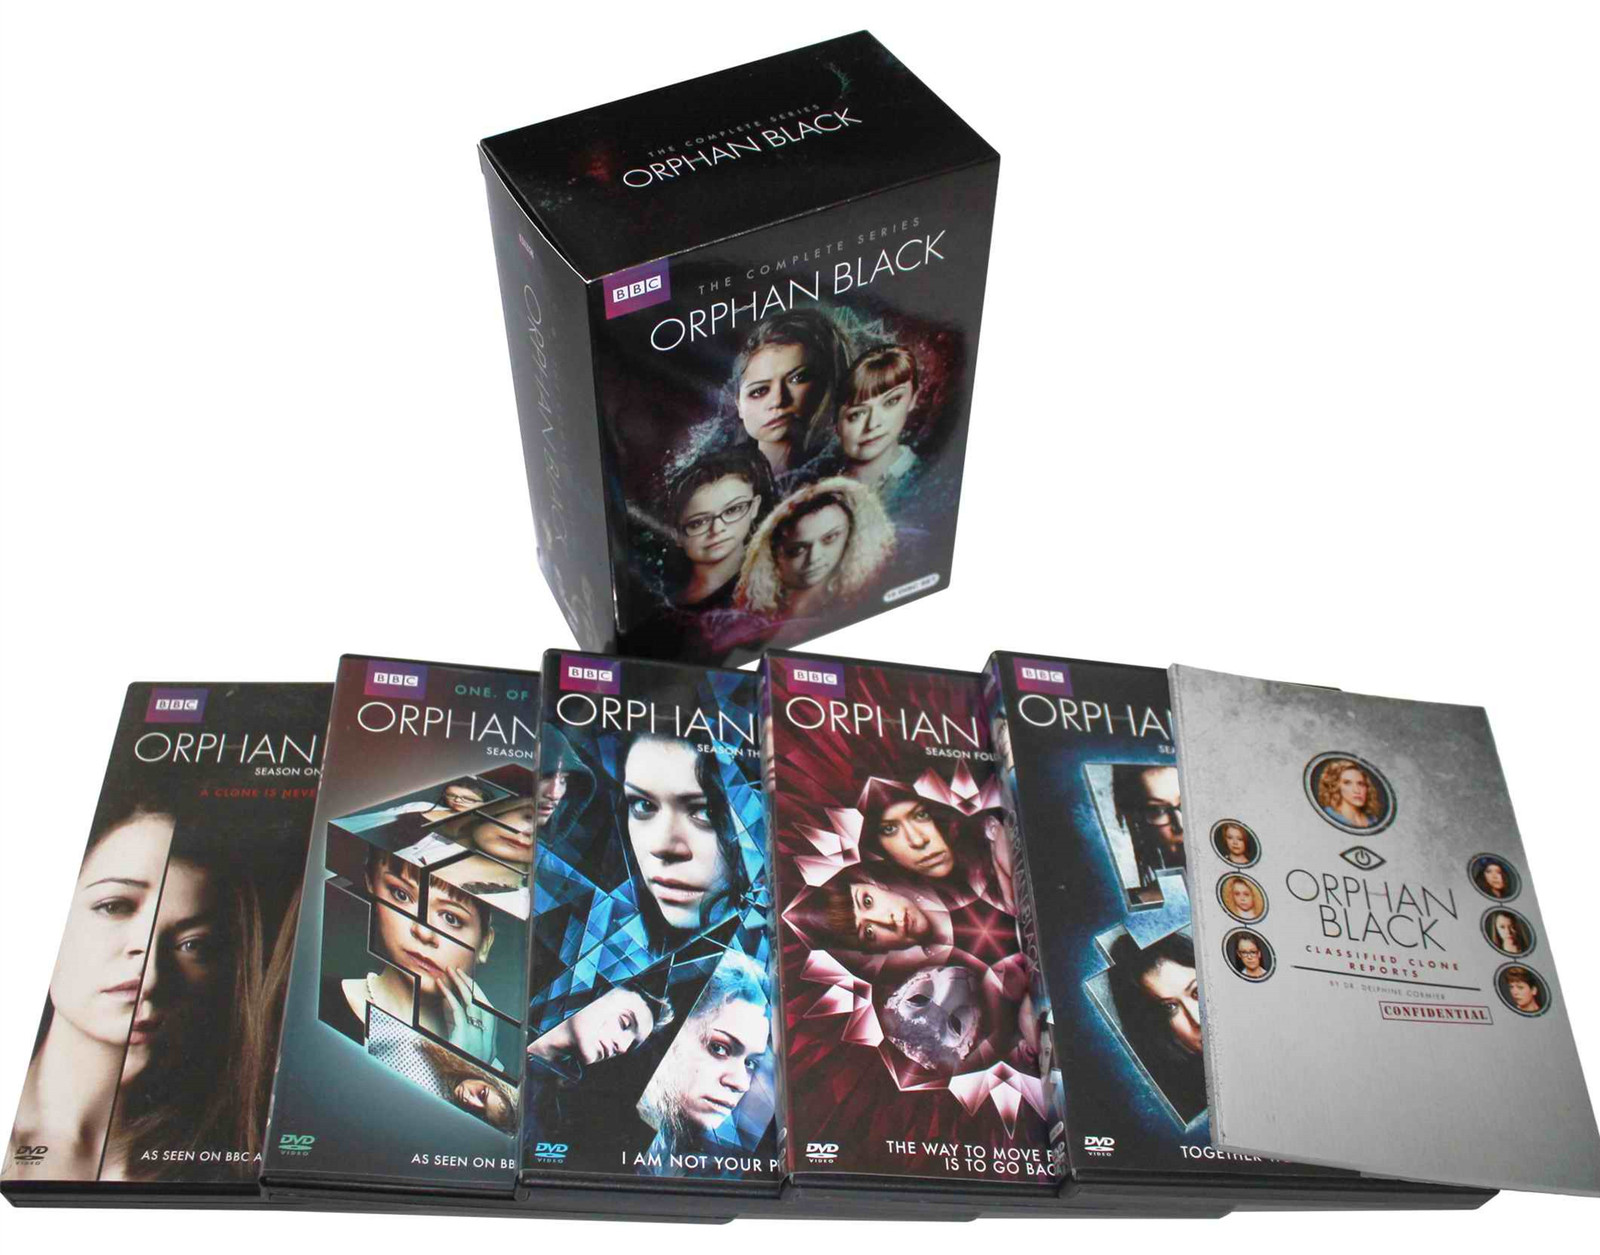 Orphan Black The Complete Seasons 1-5 1,2,3,4,5 DVD Set 15 Disc Free Shipping